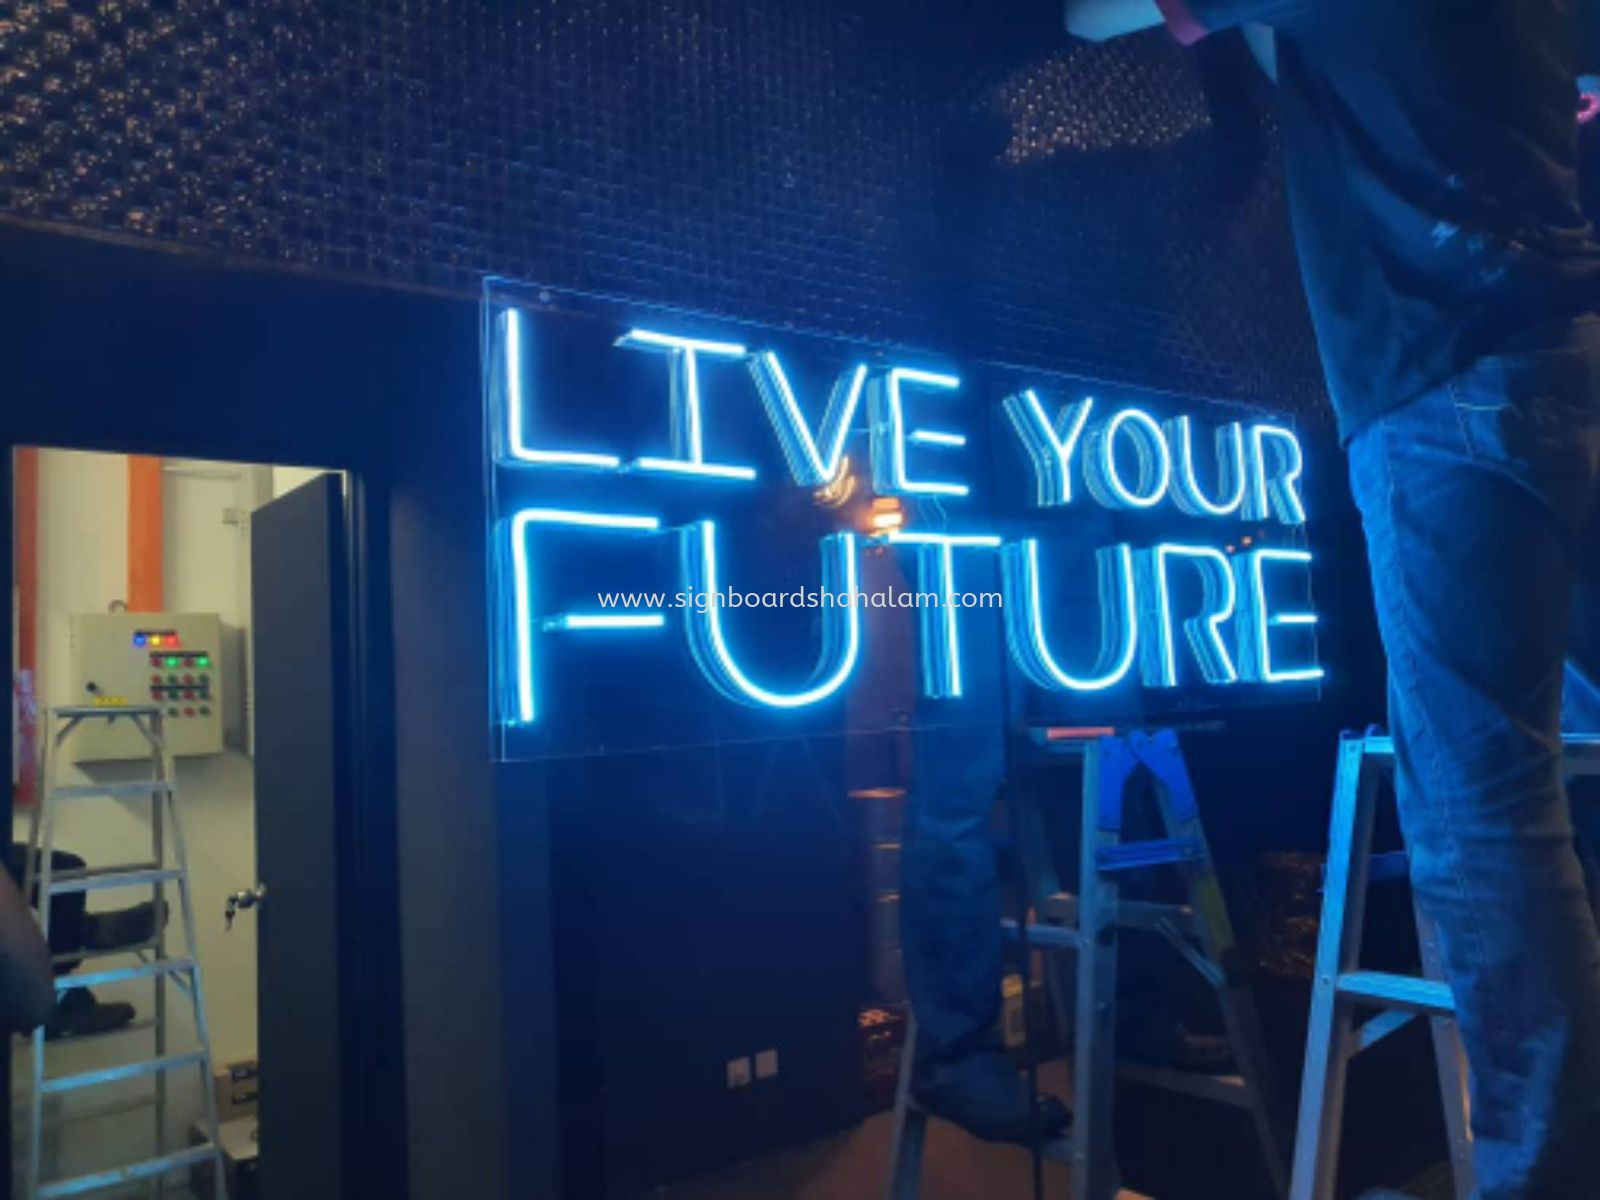 LED NEON SIGNAGE, 3D LETTERING, LIVE YOUR FUTURE